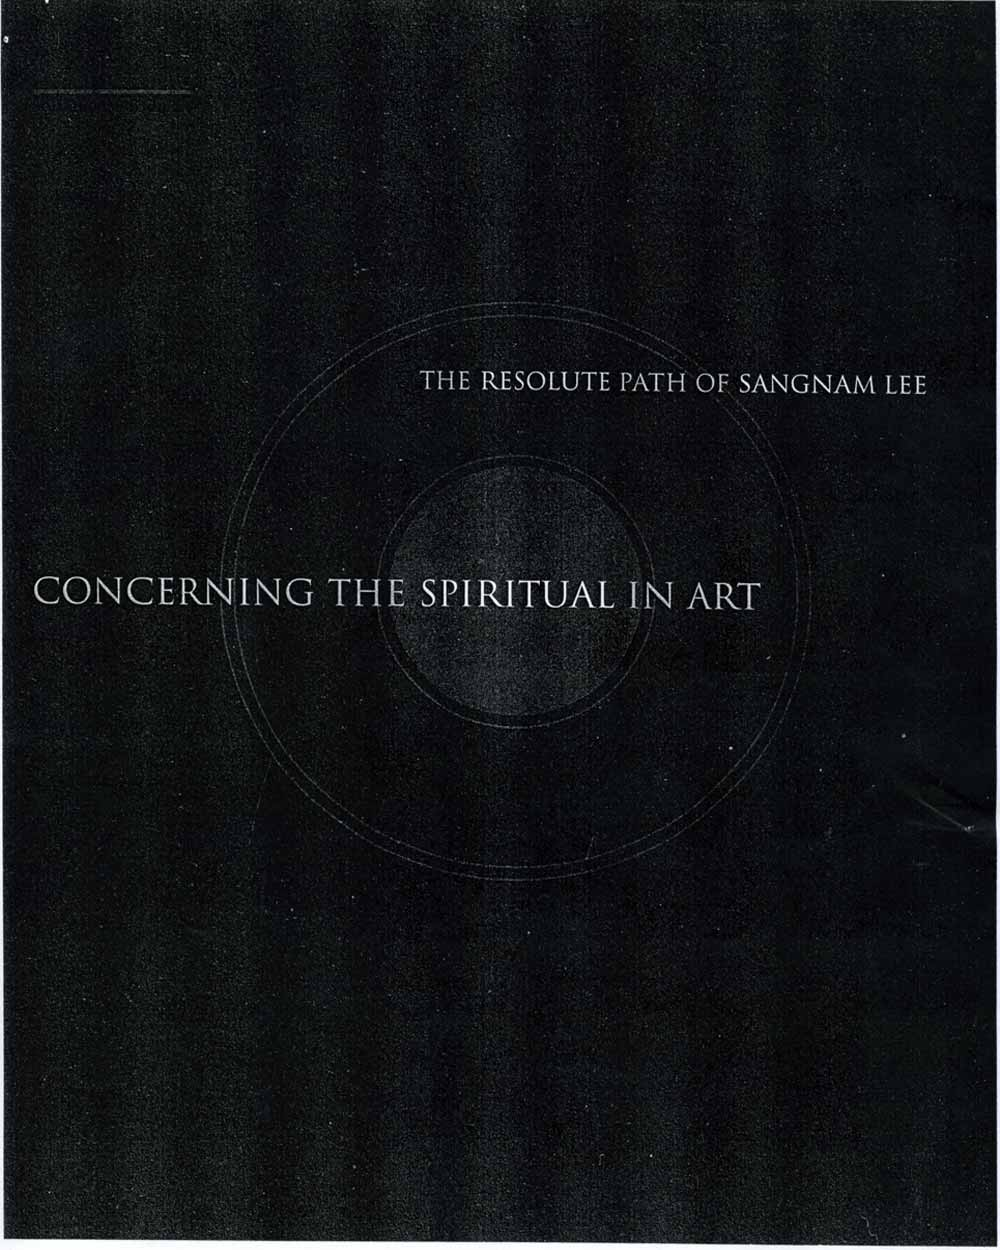 Concerning the Spiritual in Art: The Resolute Path of Sangnam Lee, article, pg 2